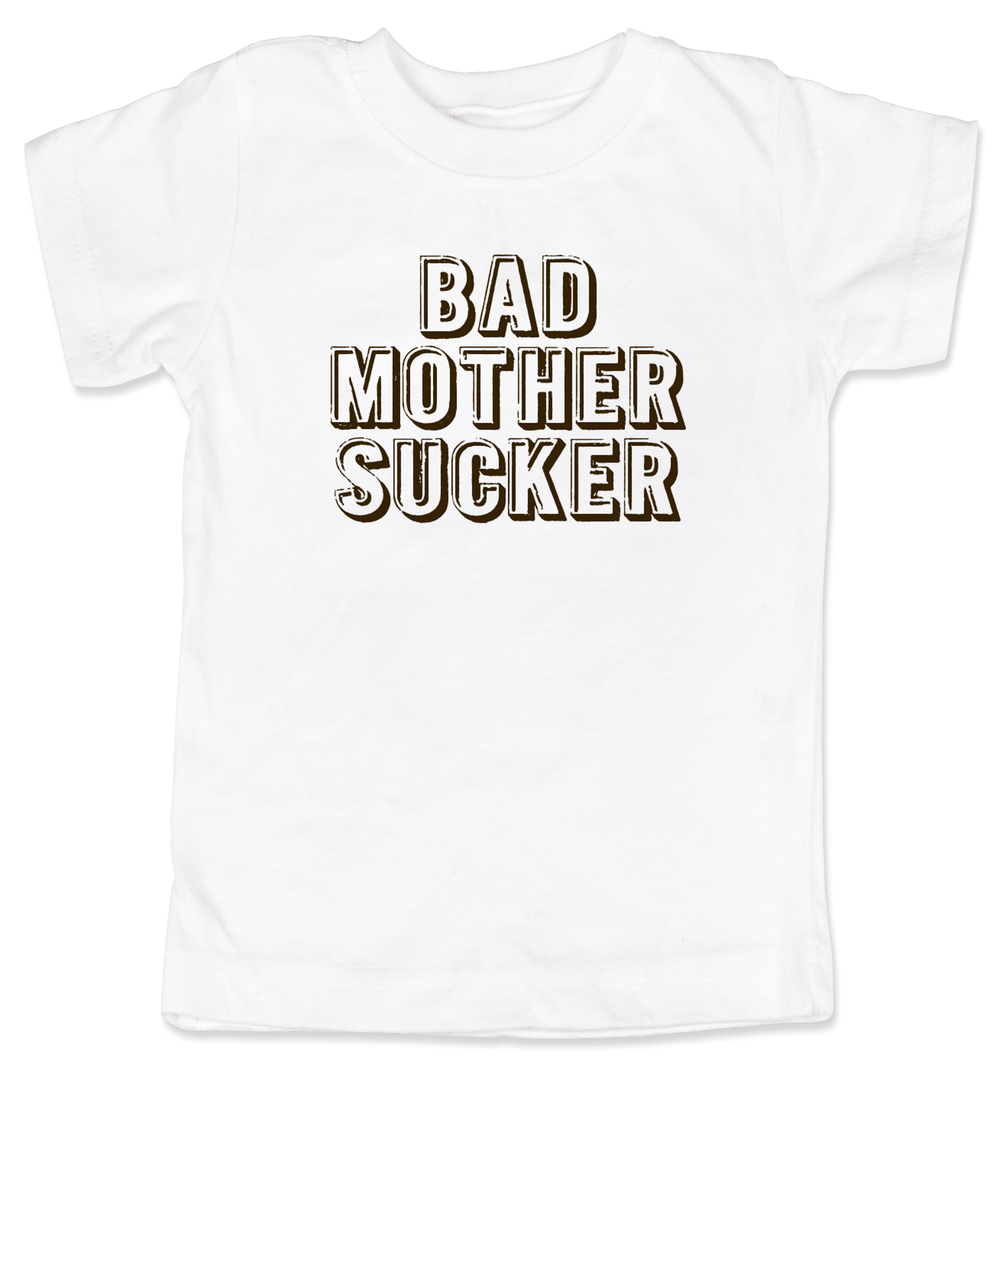 88a3b222d Bad Mother Sucker toddler shirt, Pulp Fiction, Bad Mother Fucker Wallet,  Samuel Jackson